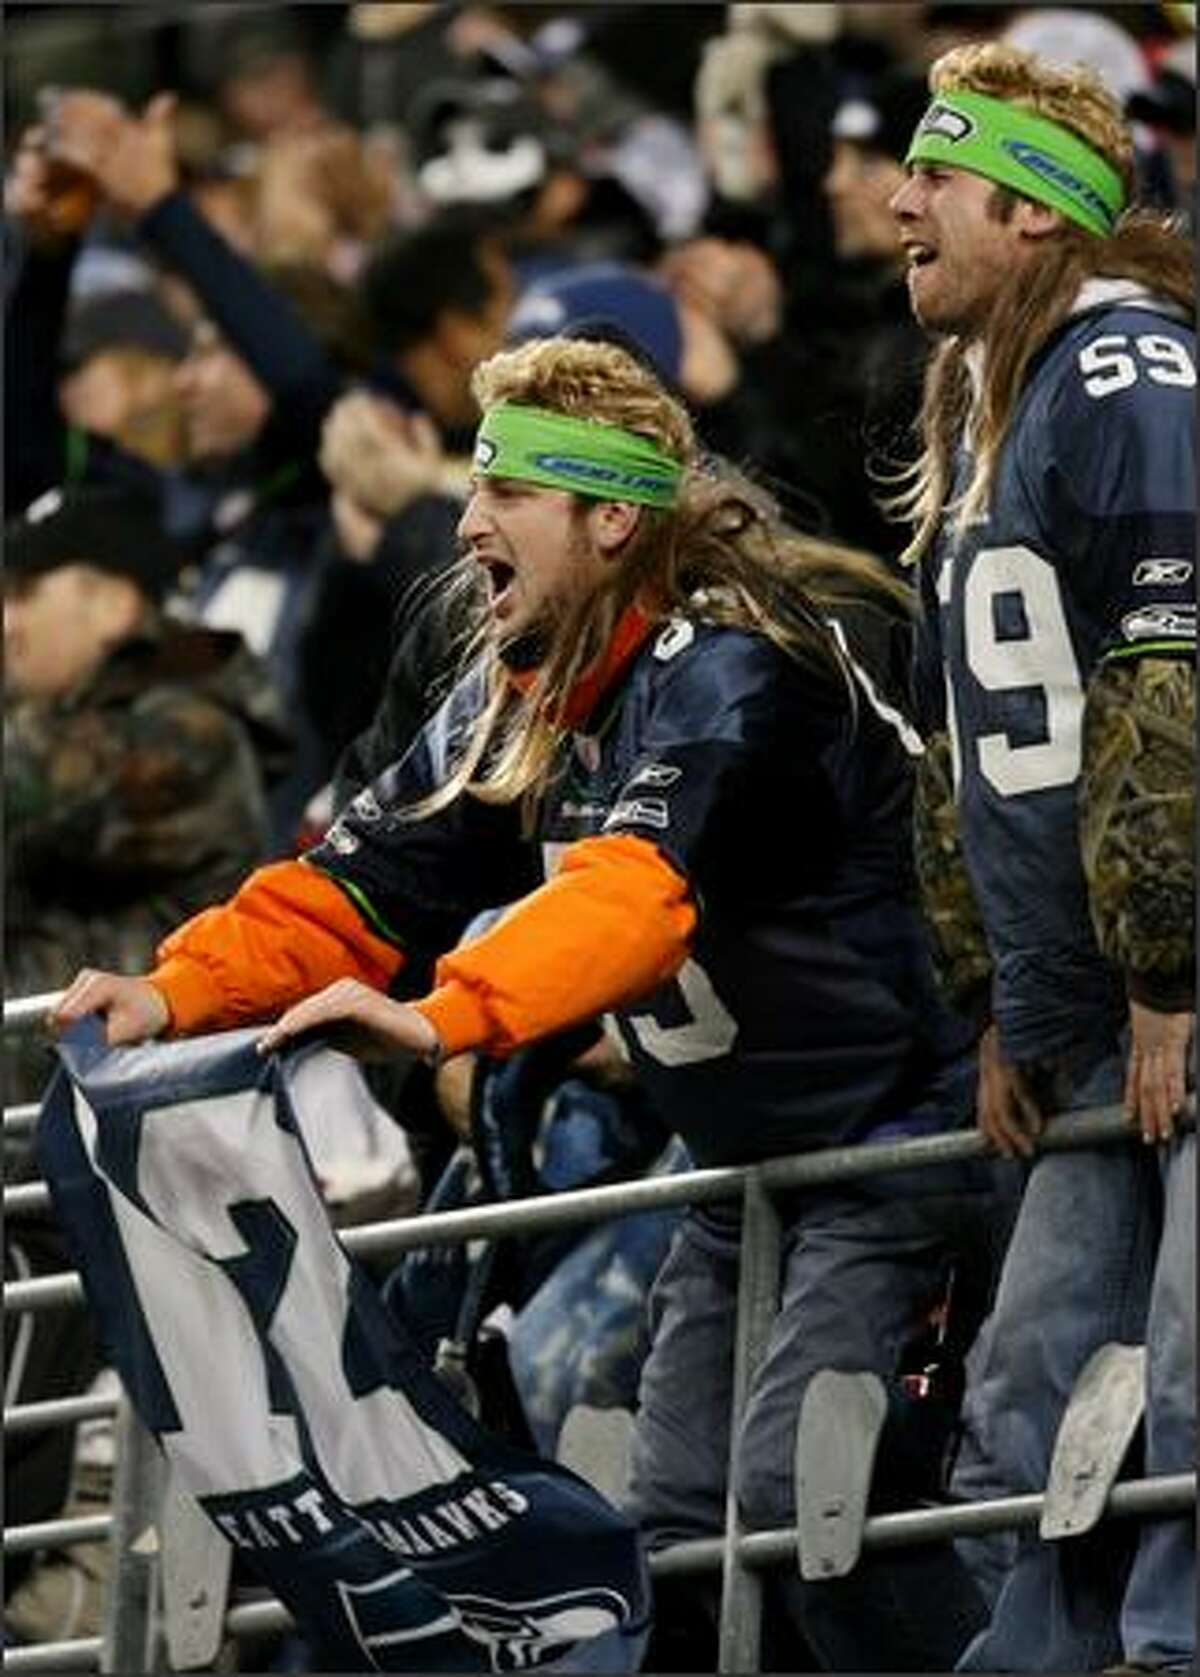 Seahawks fans react after the 49ers were called for consecutive false starts during the 1st quarter at Qwest Field.